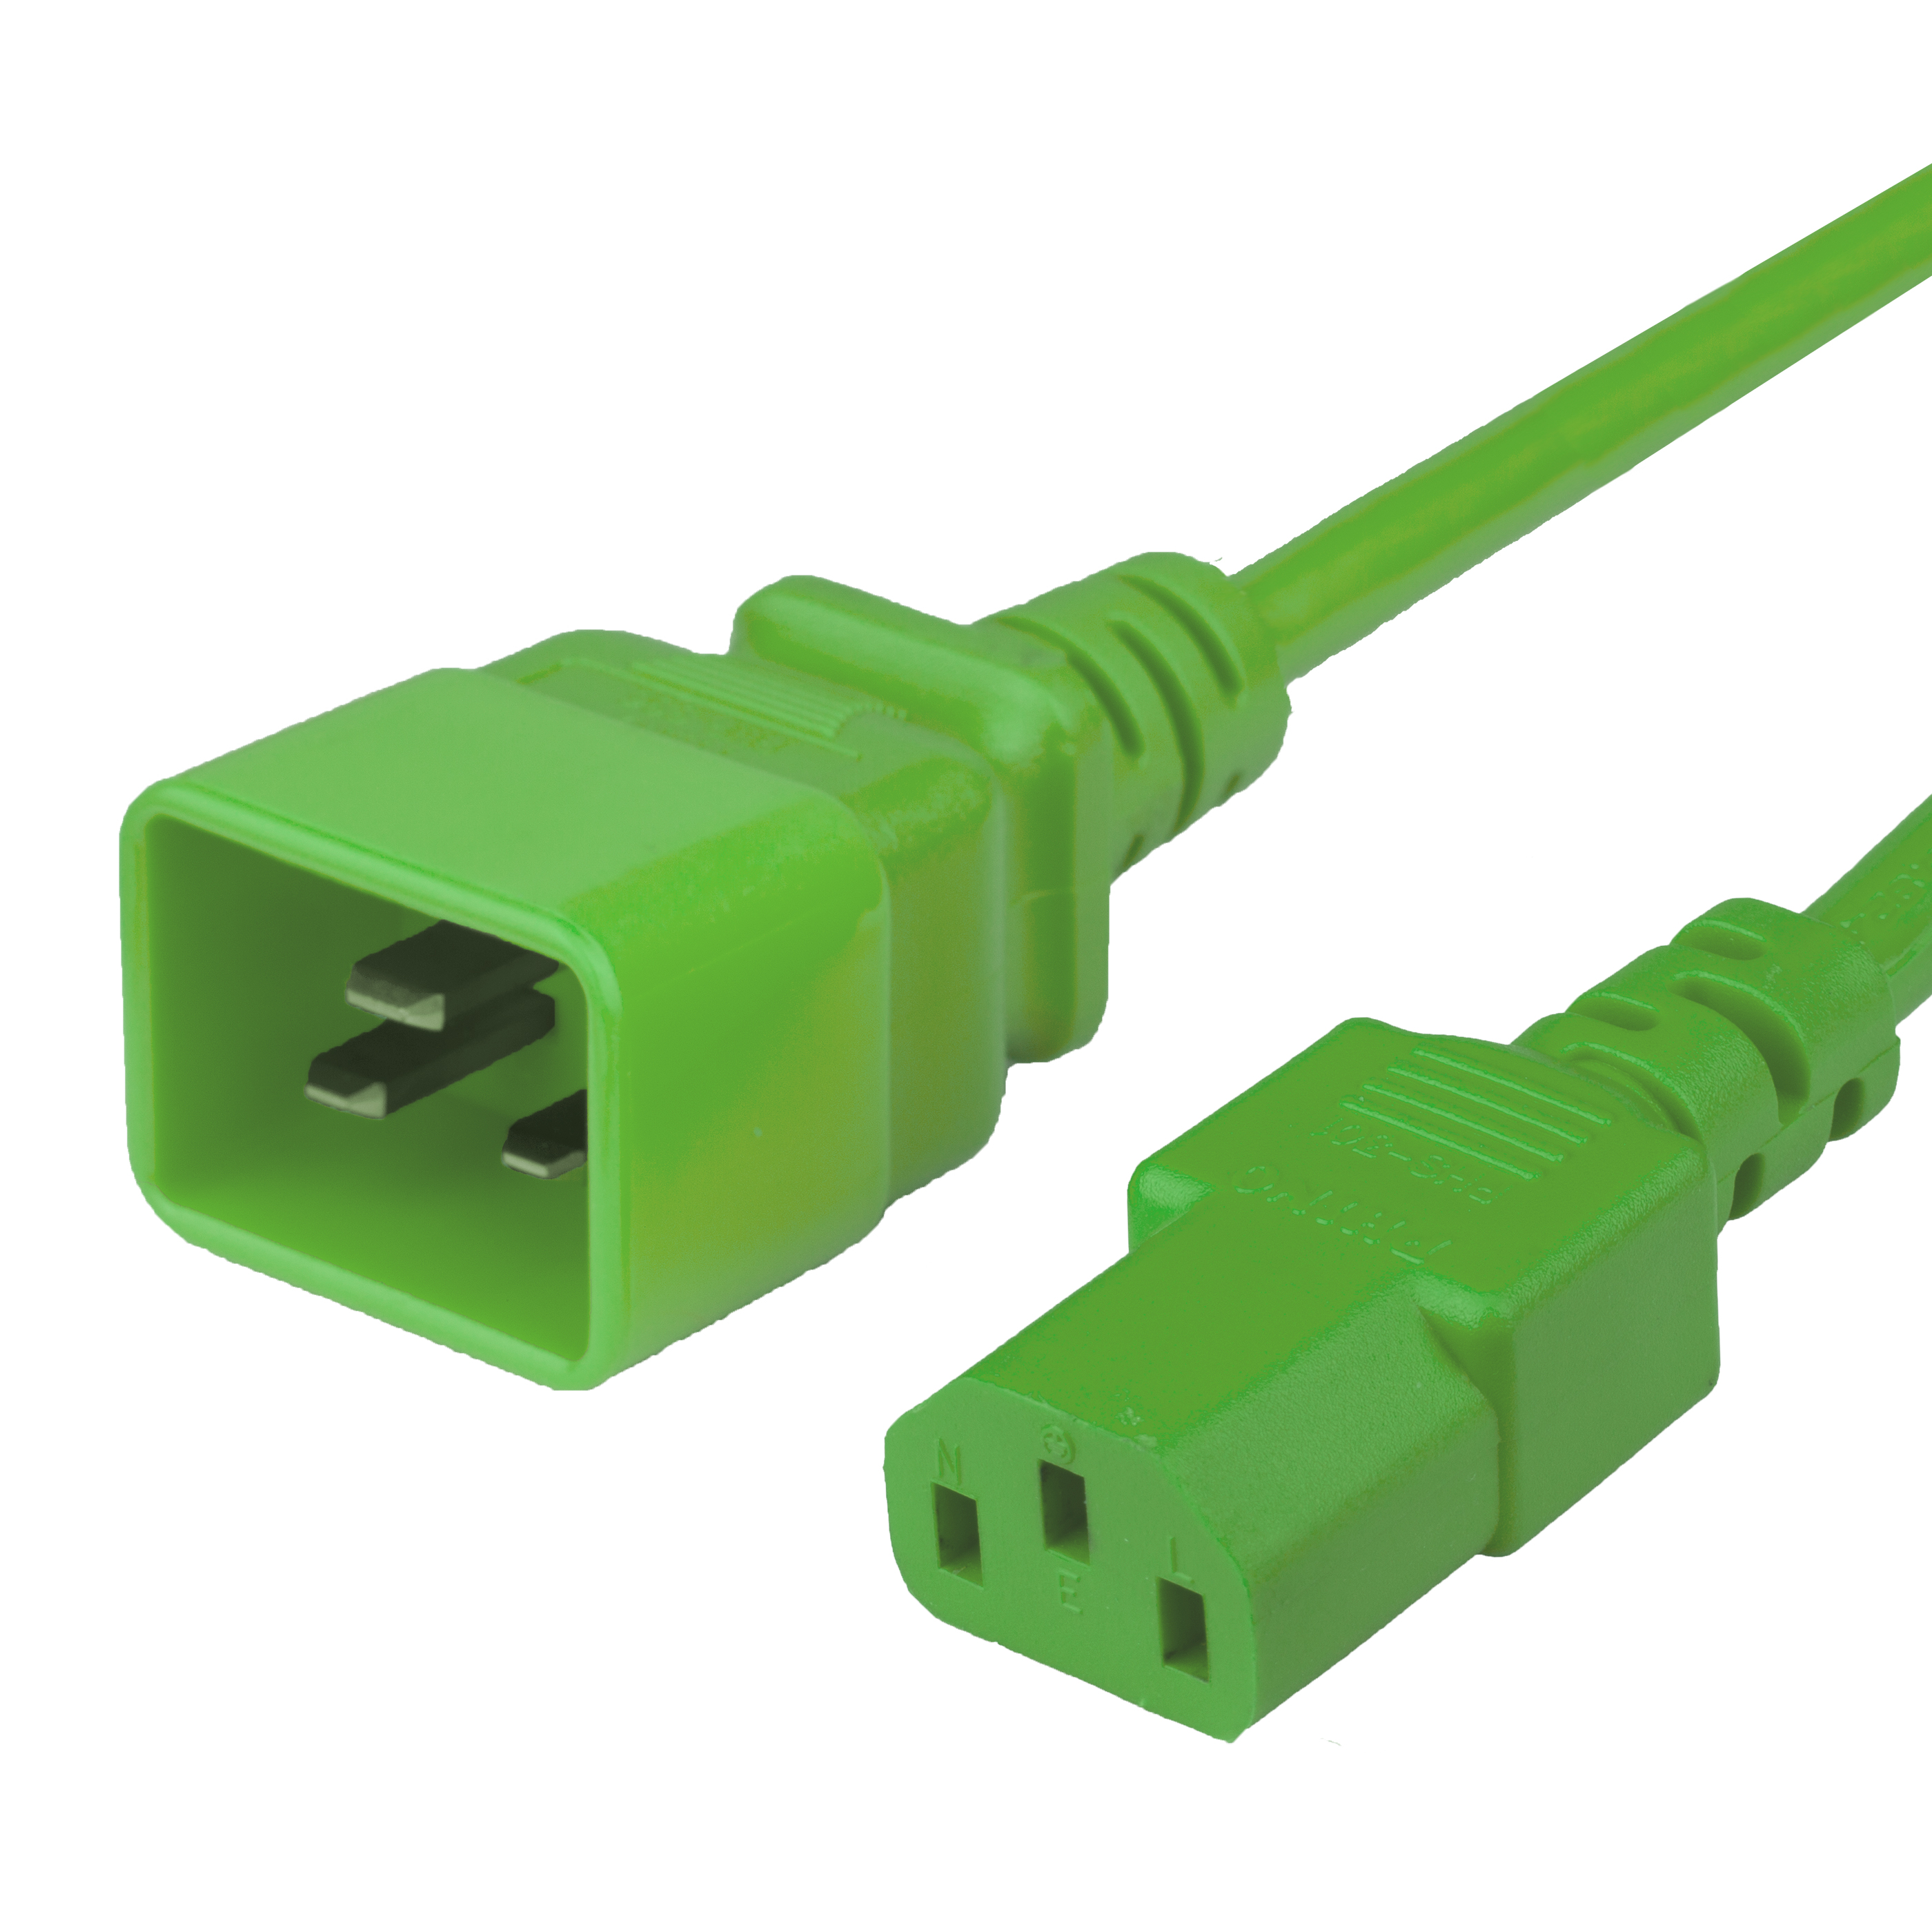 2FT C20 C13 15A 250V GREEN Power Cord